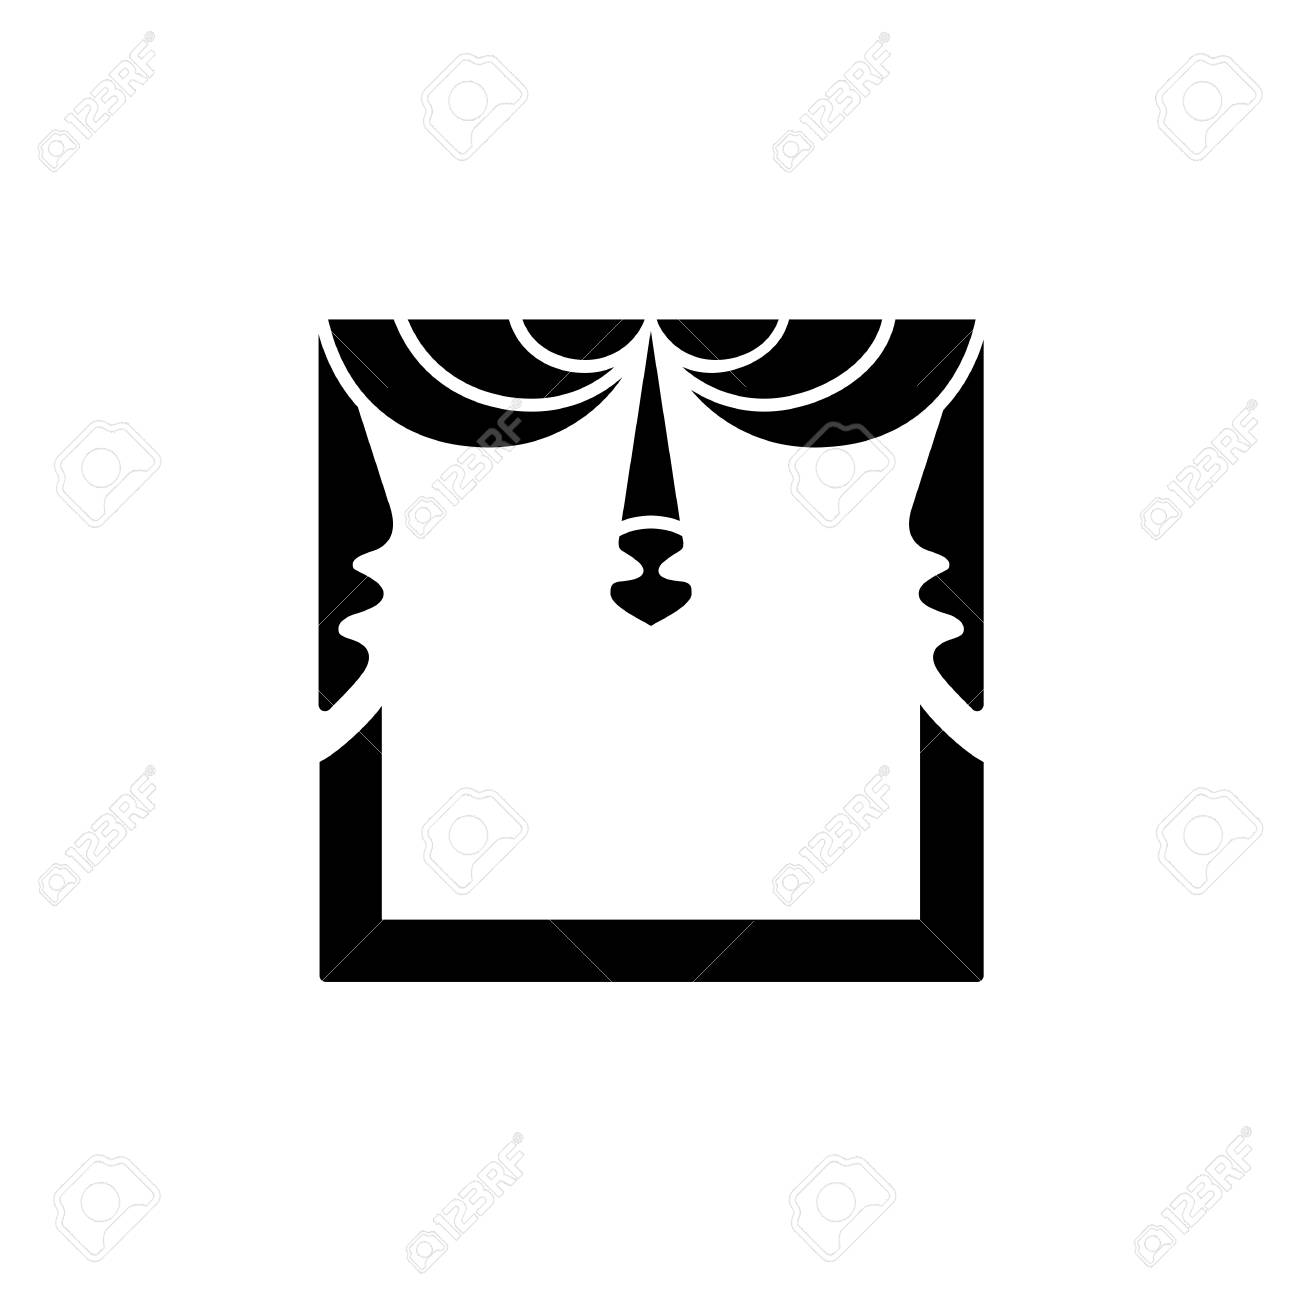 Flat icon of window shade with 2 asymmetric swags. Isolated object on white background - 126841638